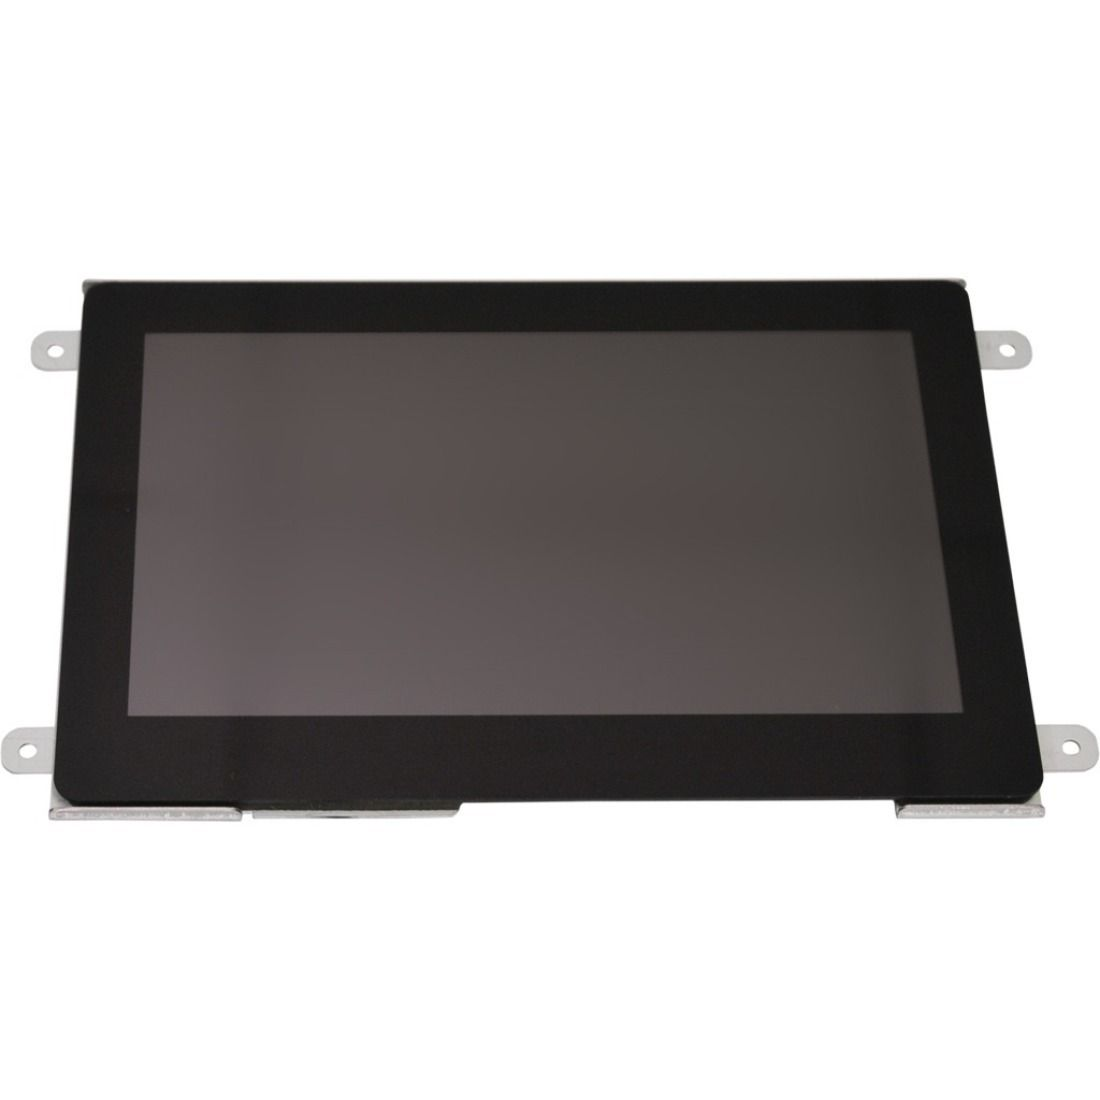 Mimo Monitors 7 Open Frame Lcd Touchscreen Monitor 16 9 15 Ms Black Open Frame Monitor Display Technologies